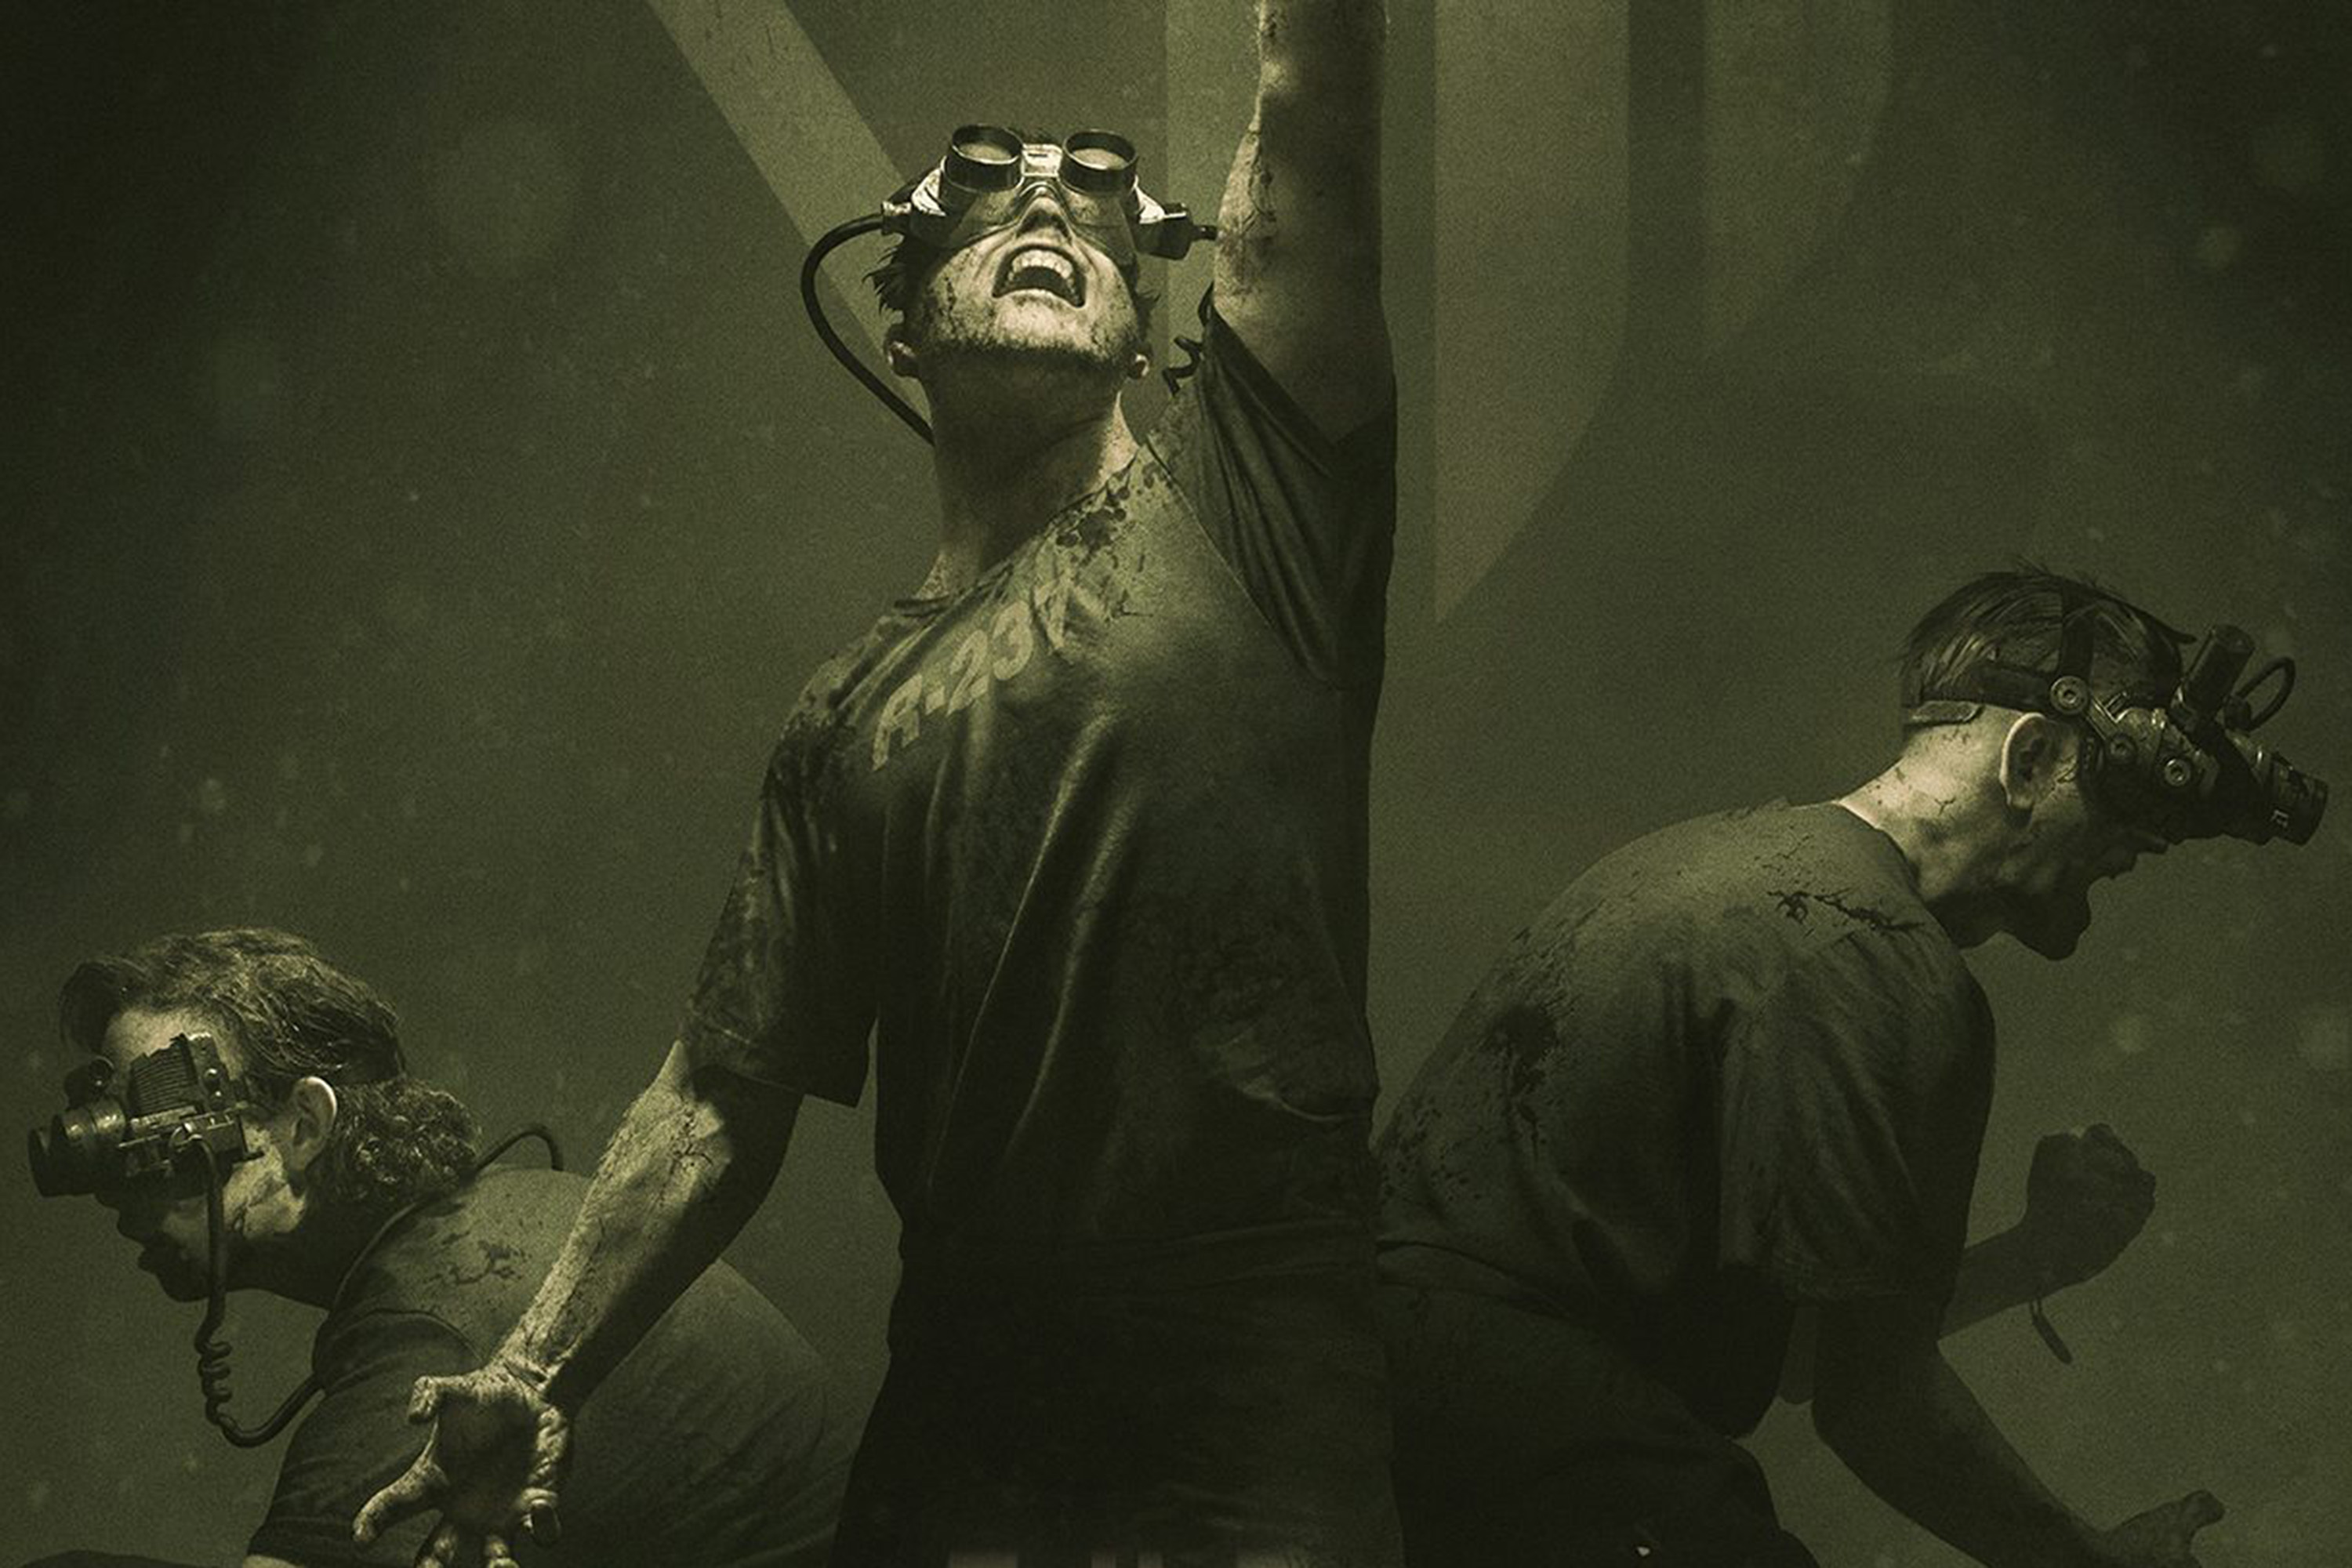 Three men, dressed in t-shirts and covered in blood, wear binoculars strapped to their faces.